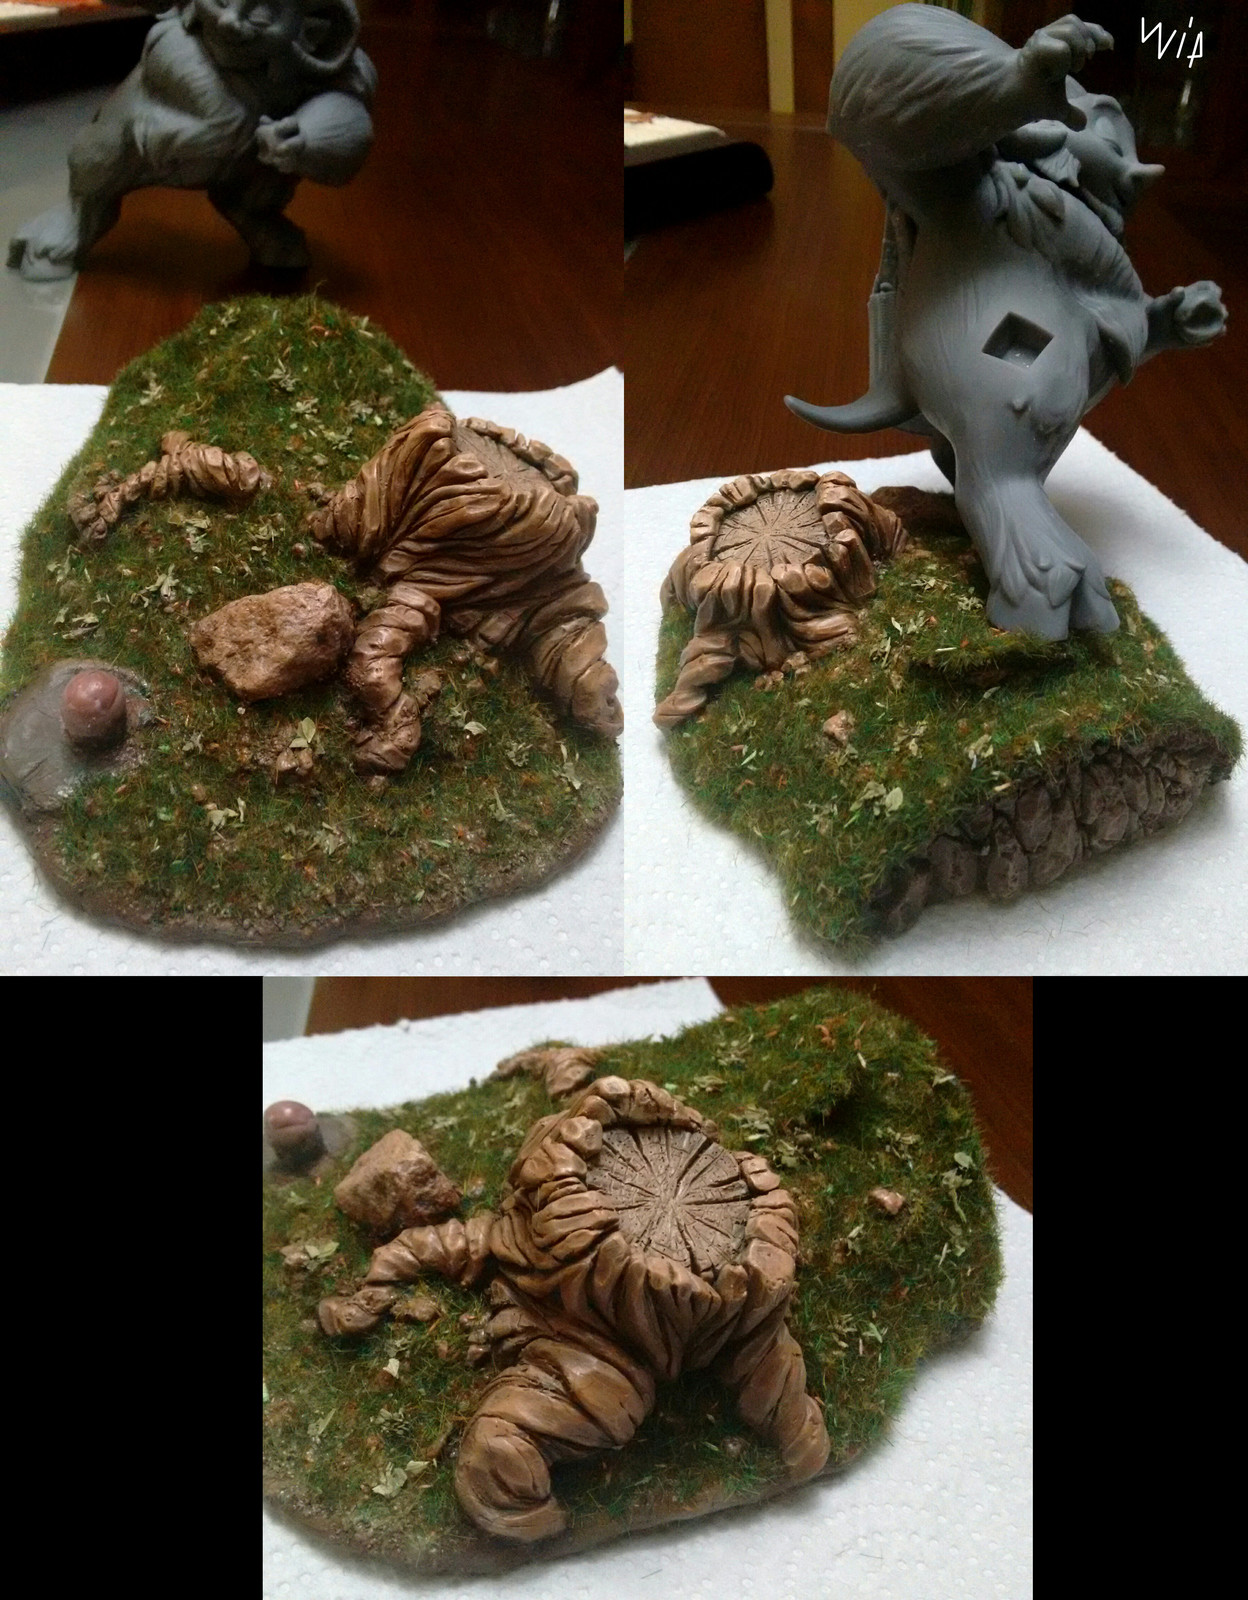 Adding some grass and leaves